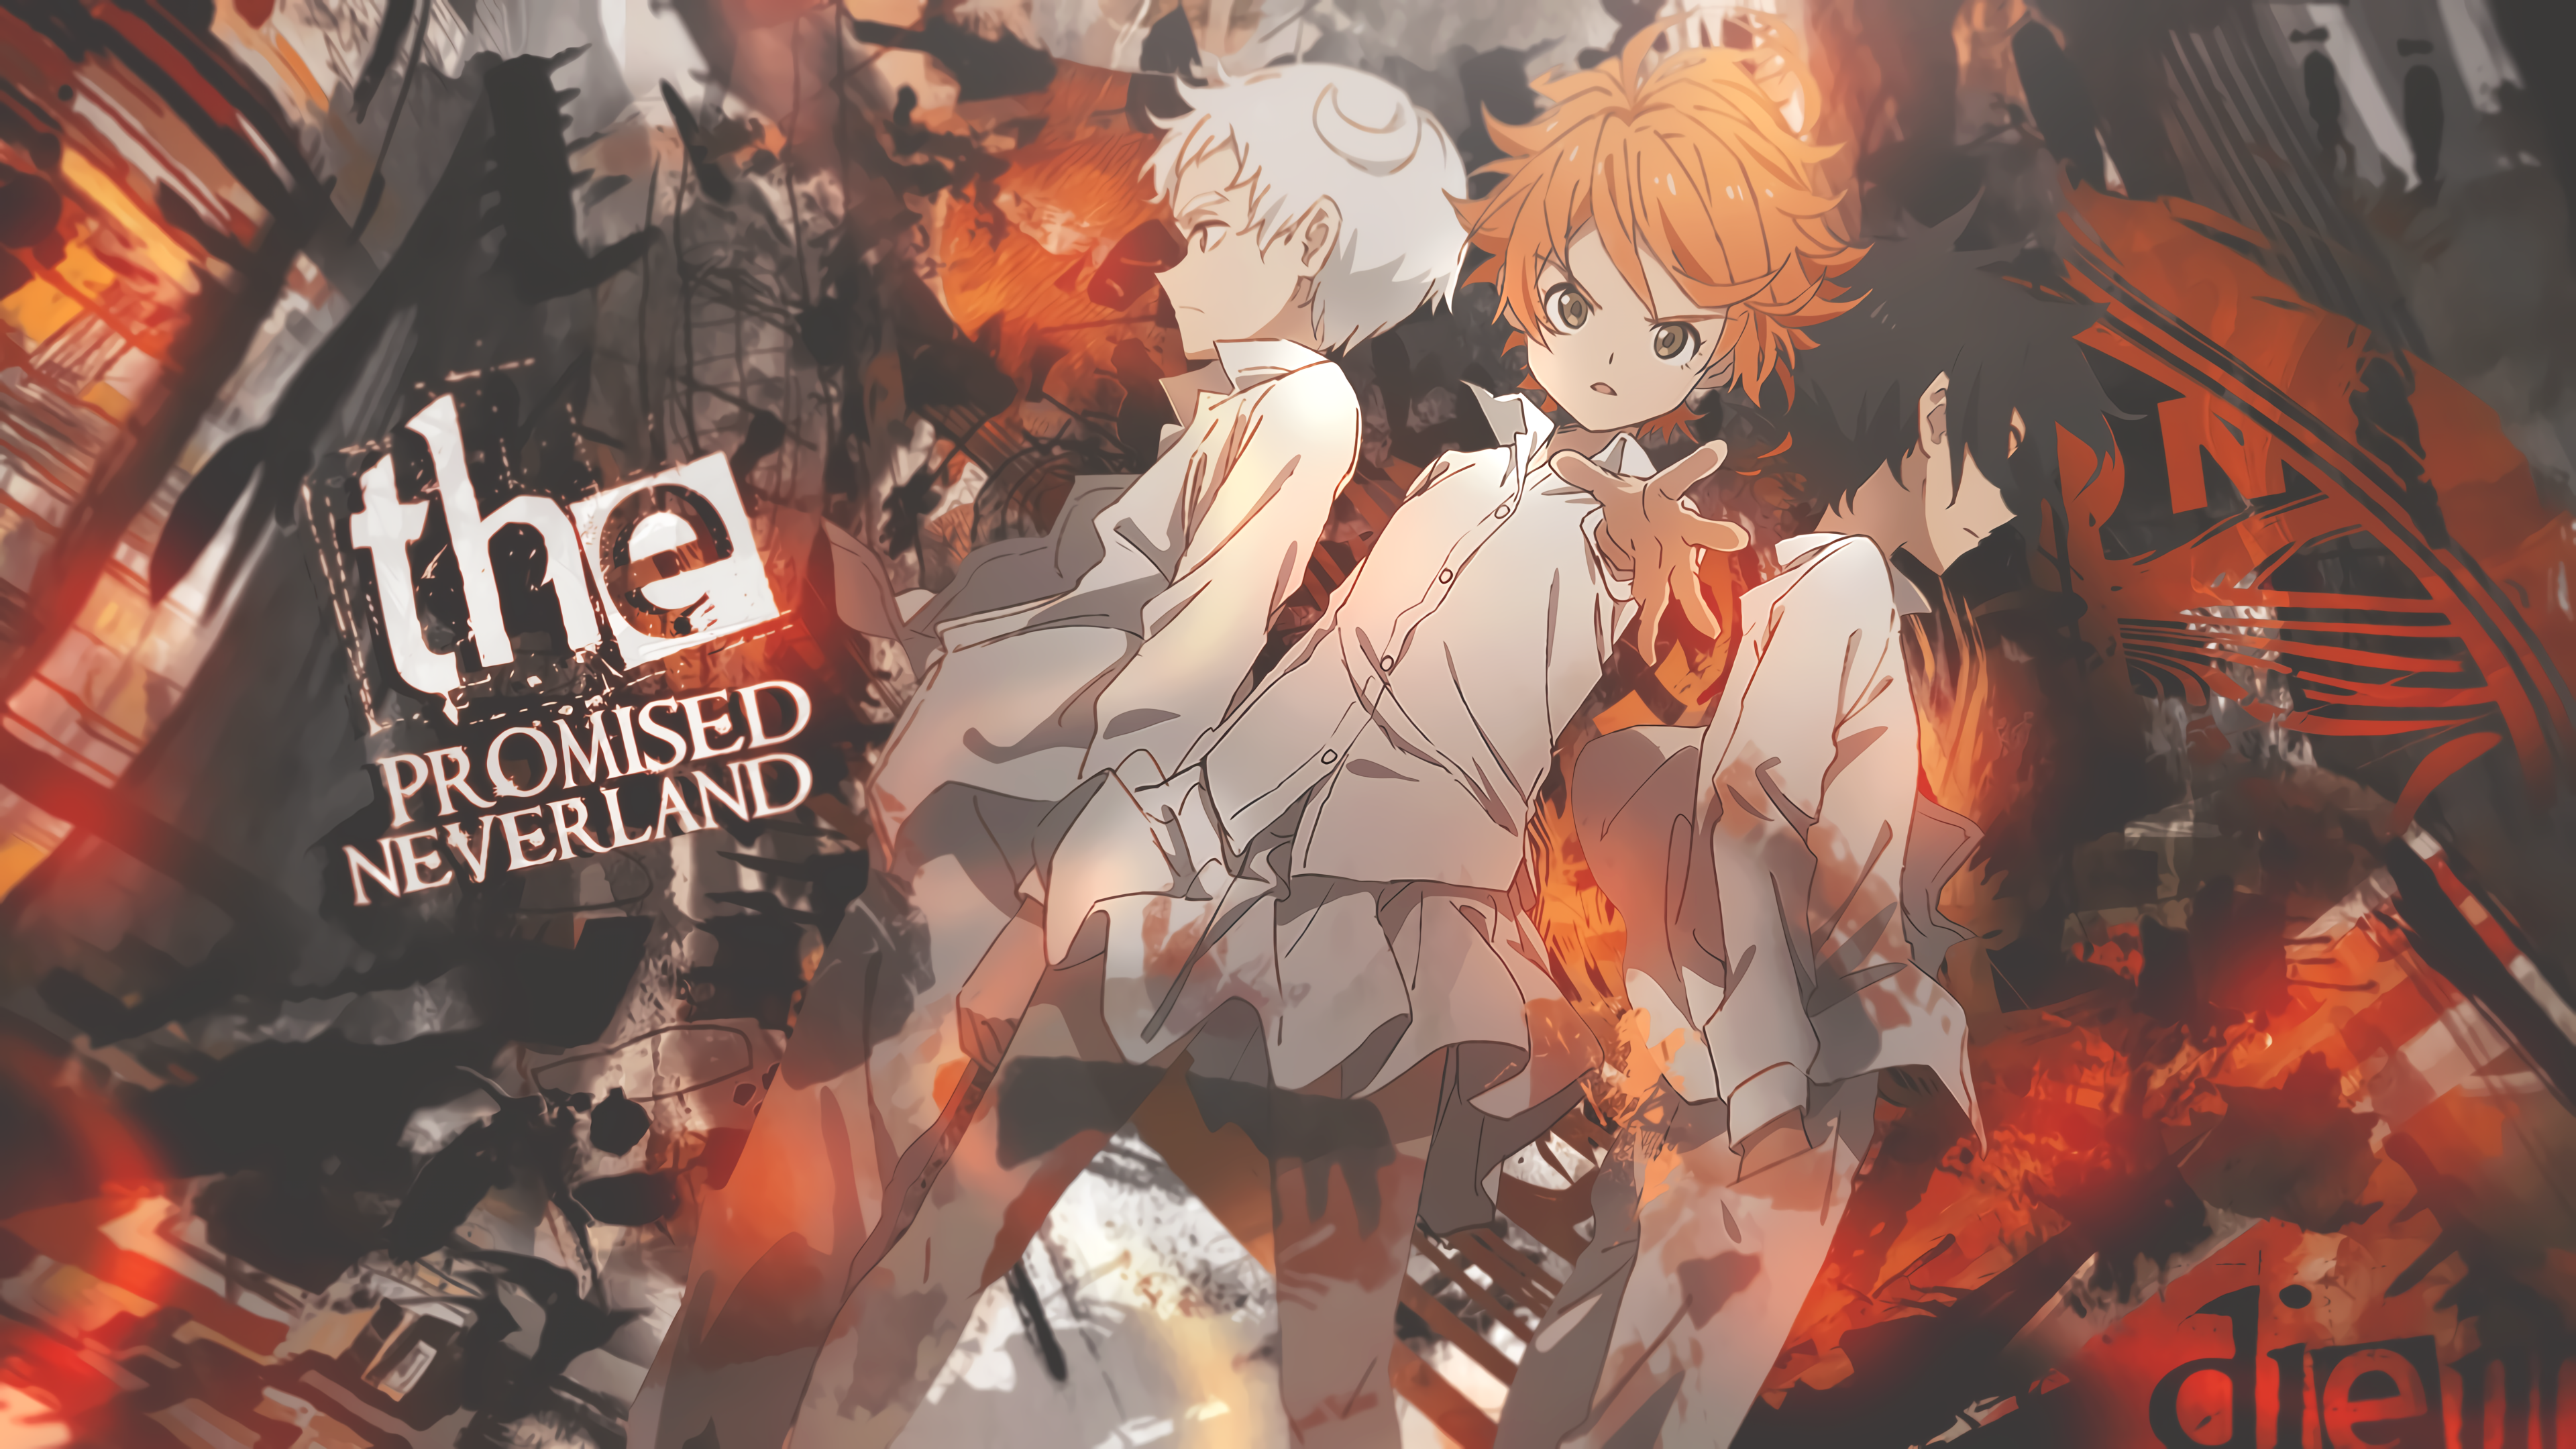 The Promised Neverland Wallpaper By Deathtototoro On Deviantart